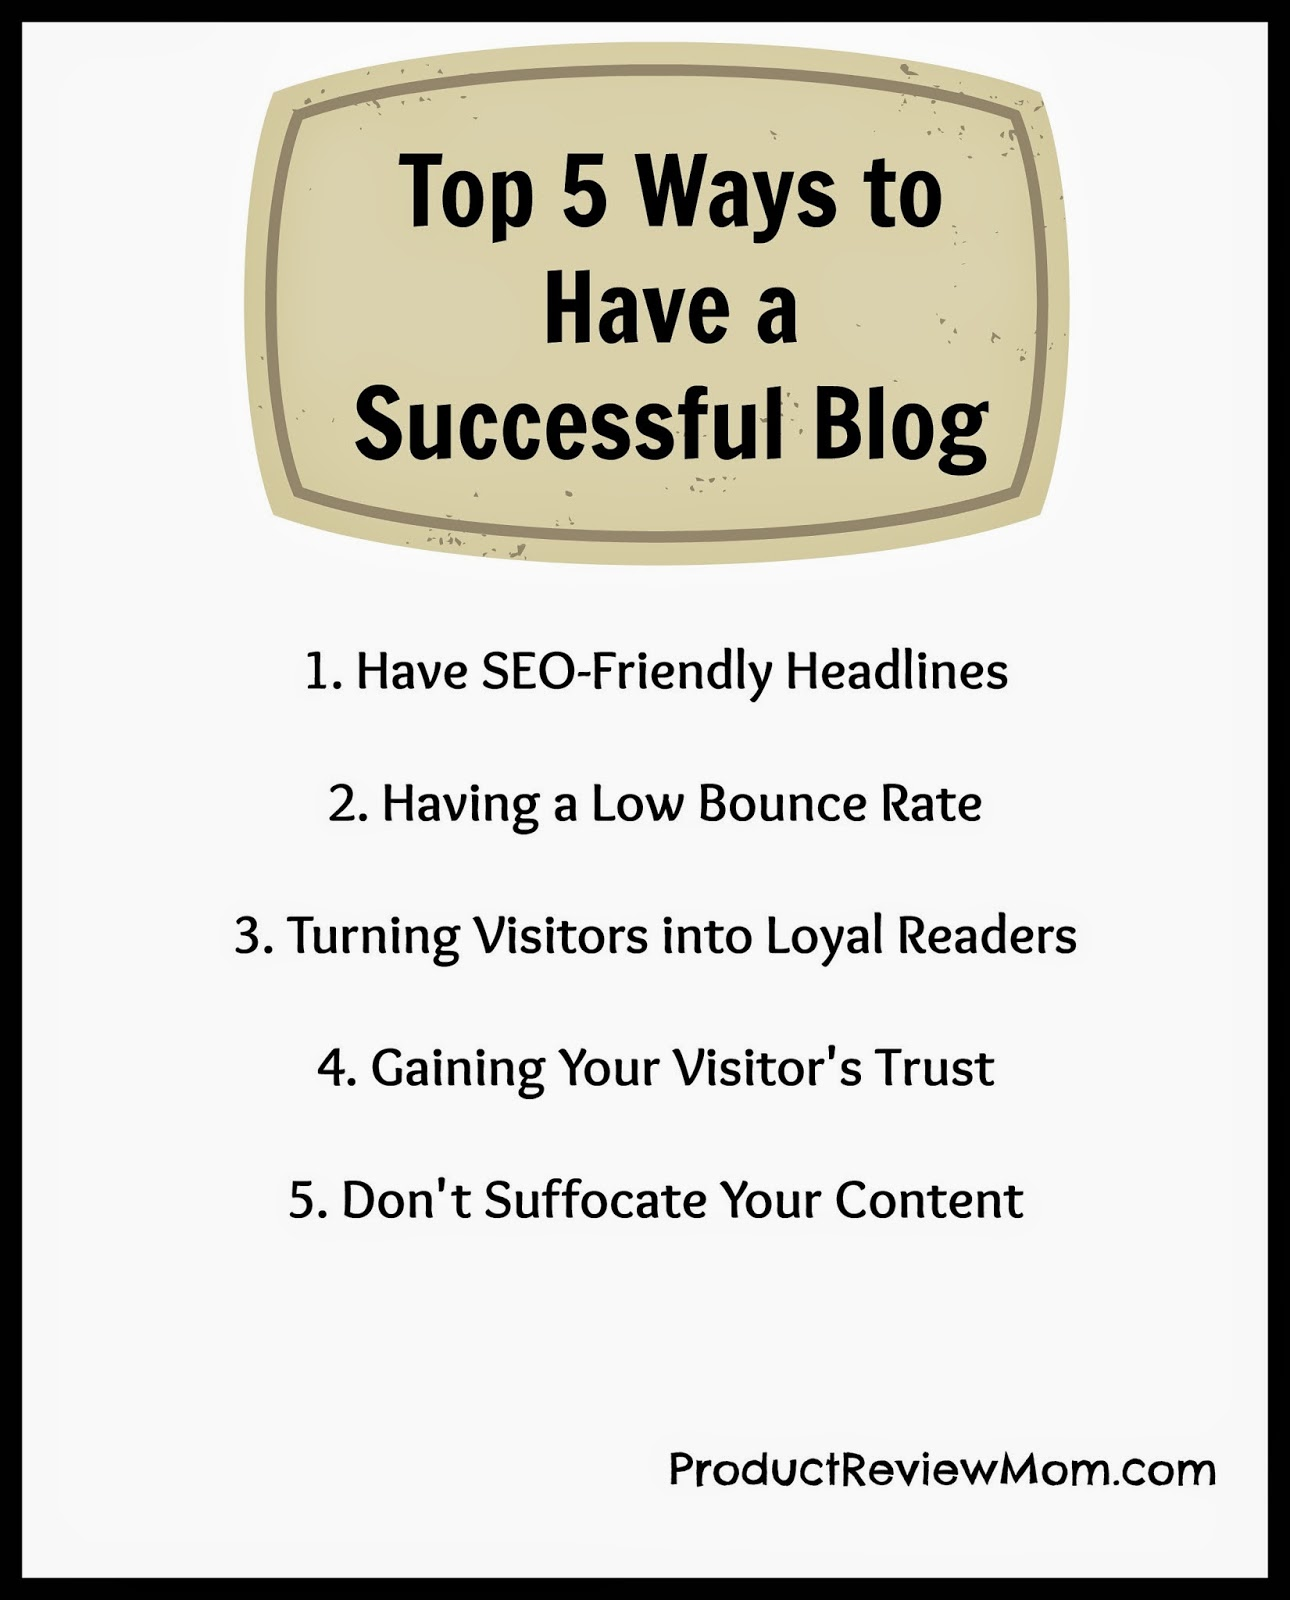 Top 5 Ways to Have a Successful Blog via ProductReviewMom.com